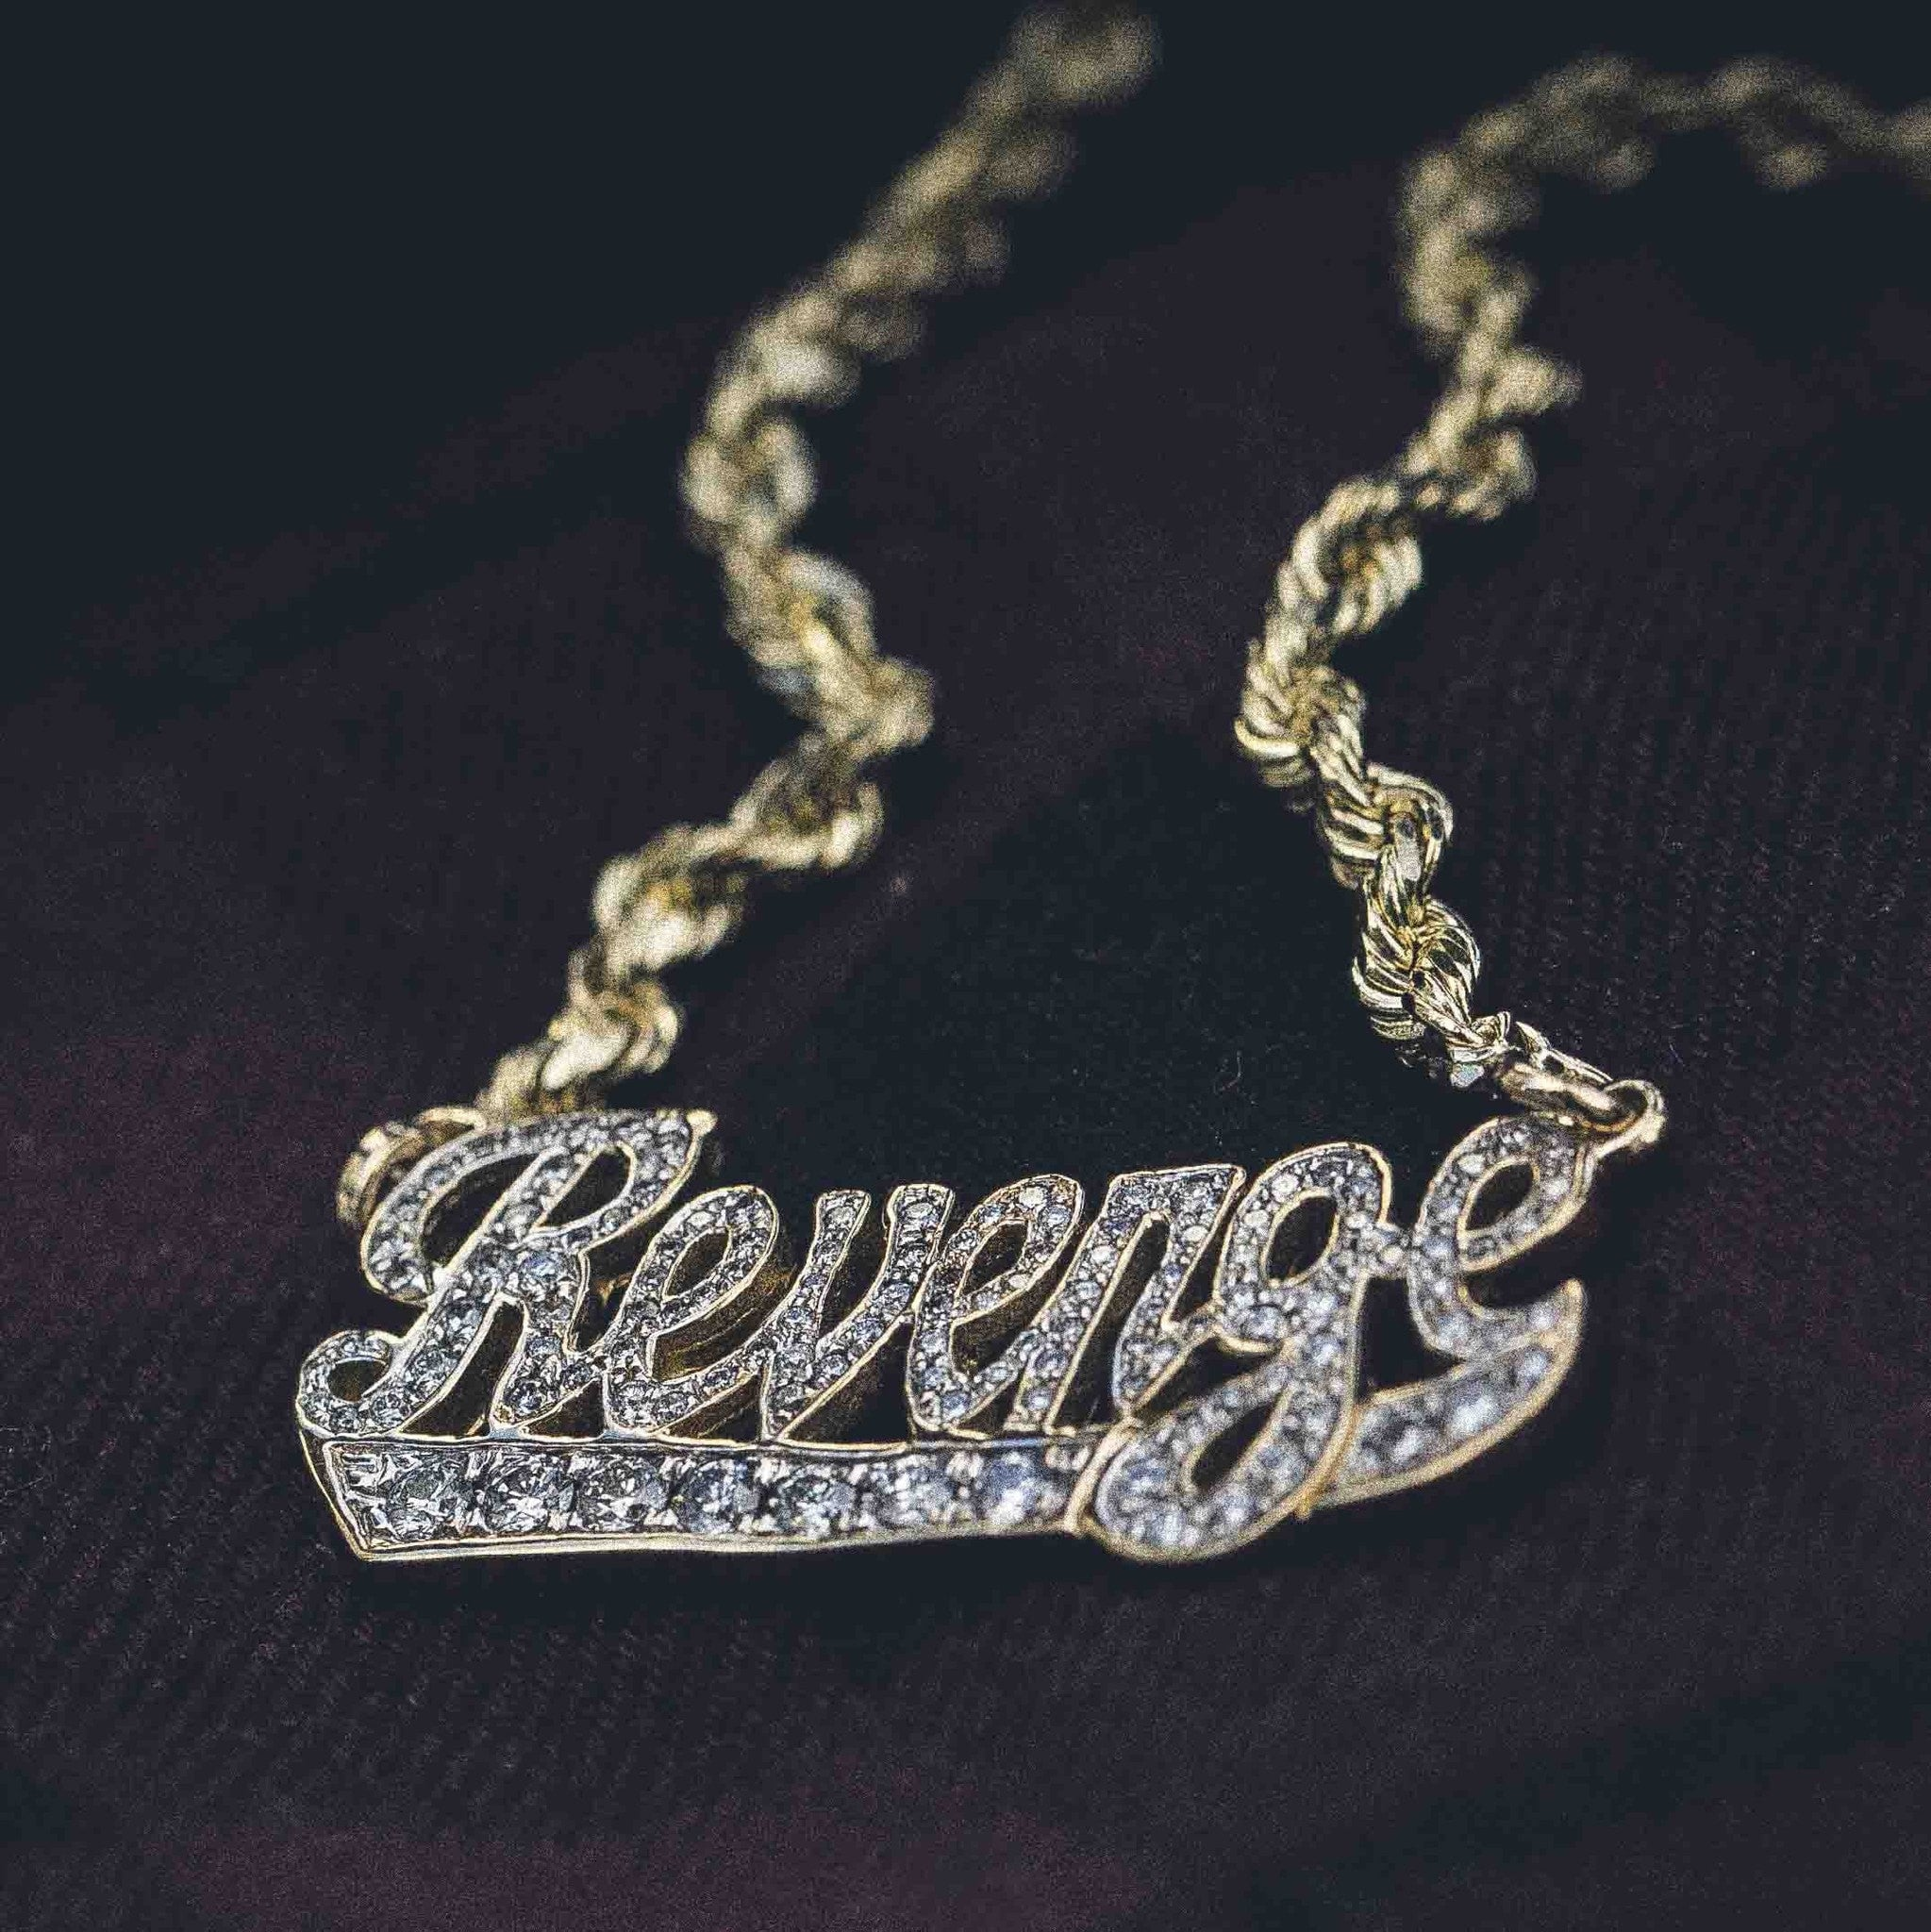 Iced Revenge Pendant - The GLD Shop